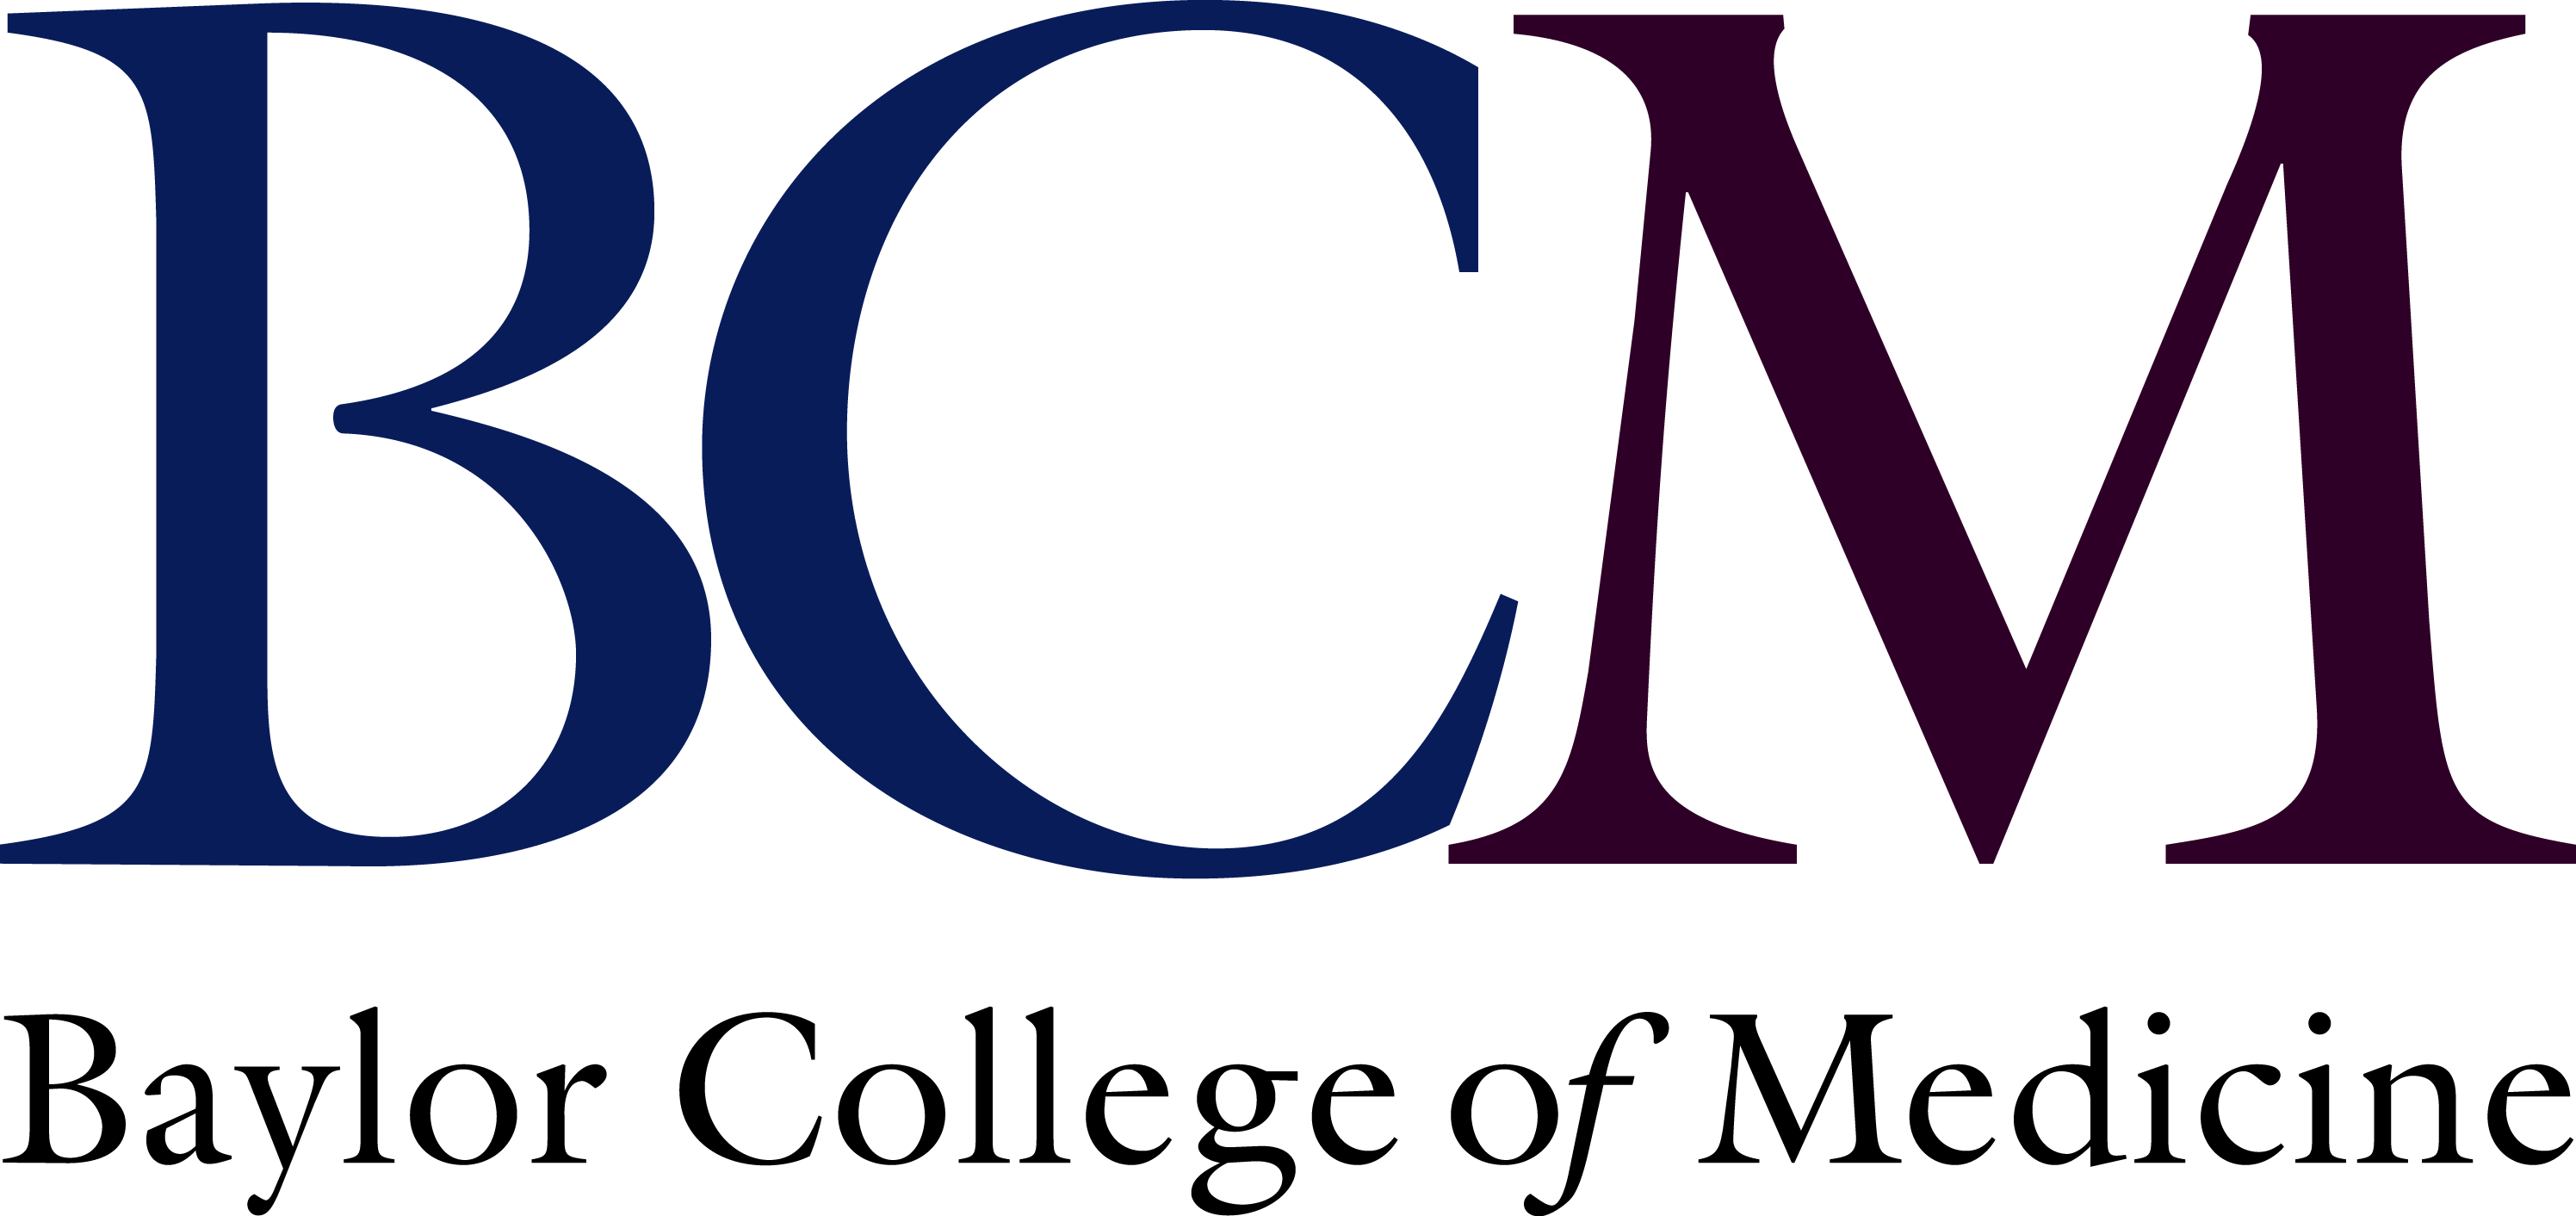 Sap Brandvoice Baylor College Of Medicine Cures It Ailments With Help From Sap Communities Physician Assistant Programs Continuing Medical Education Medicine